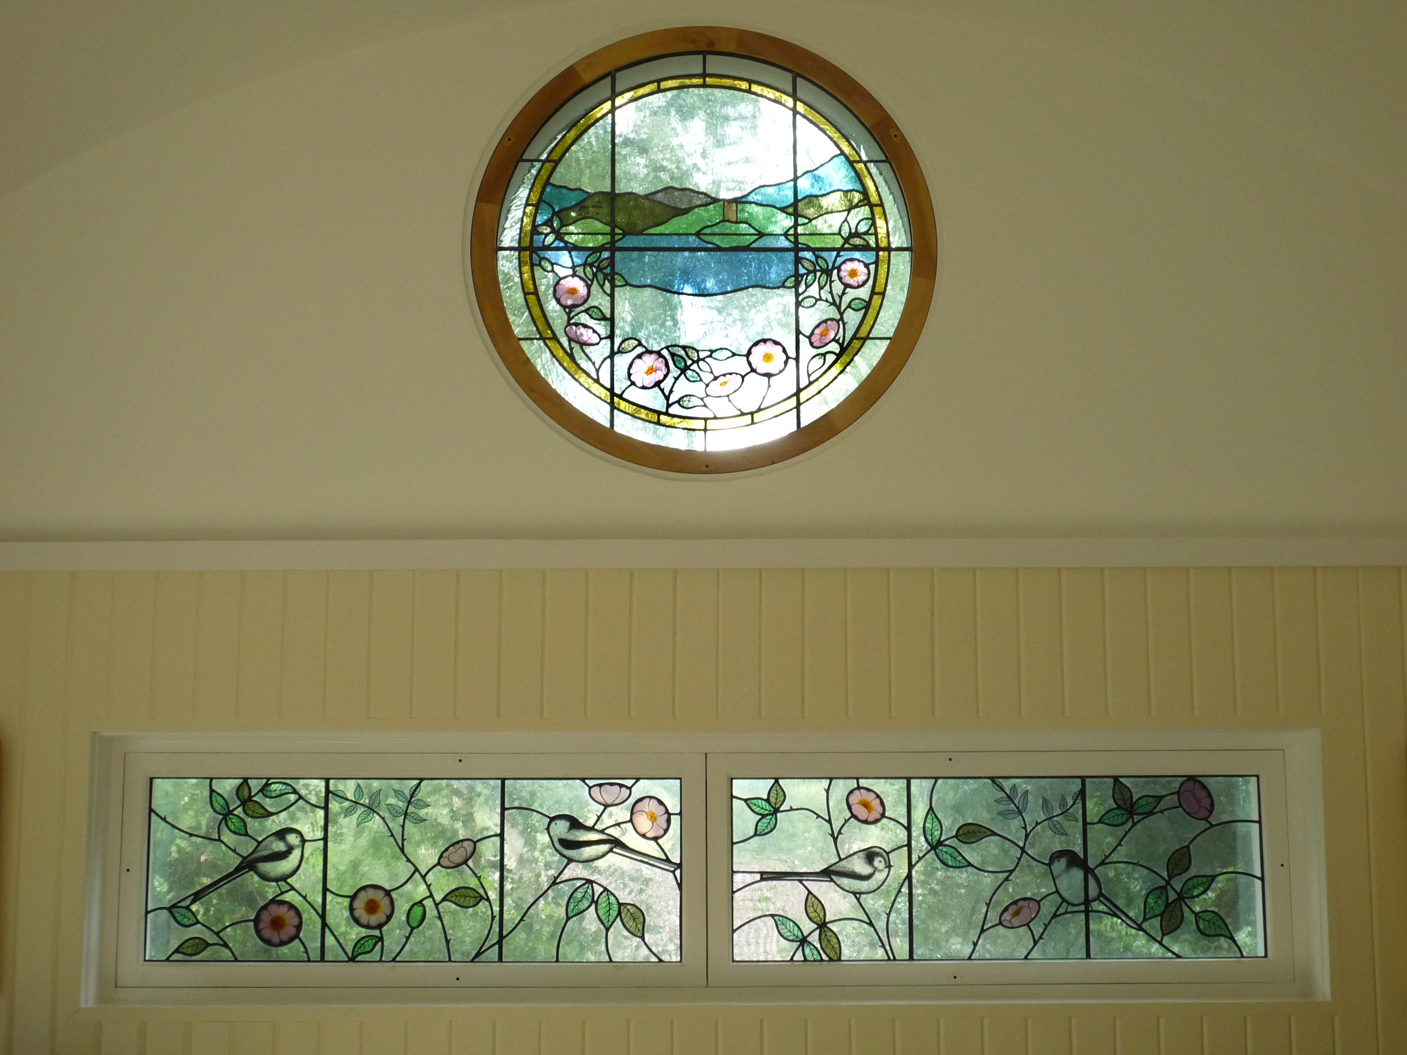 Craigevar Castle window and Briar Roses and Long-tailed tits window, Tunbridge Wells, Kent.